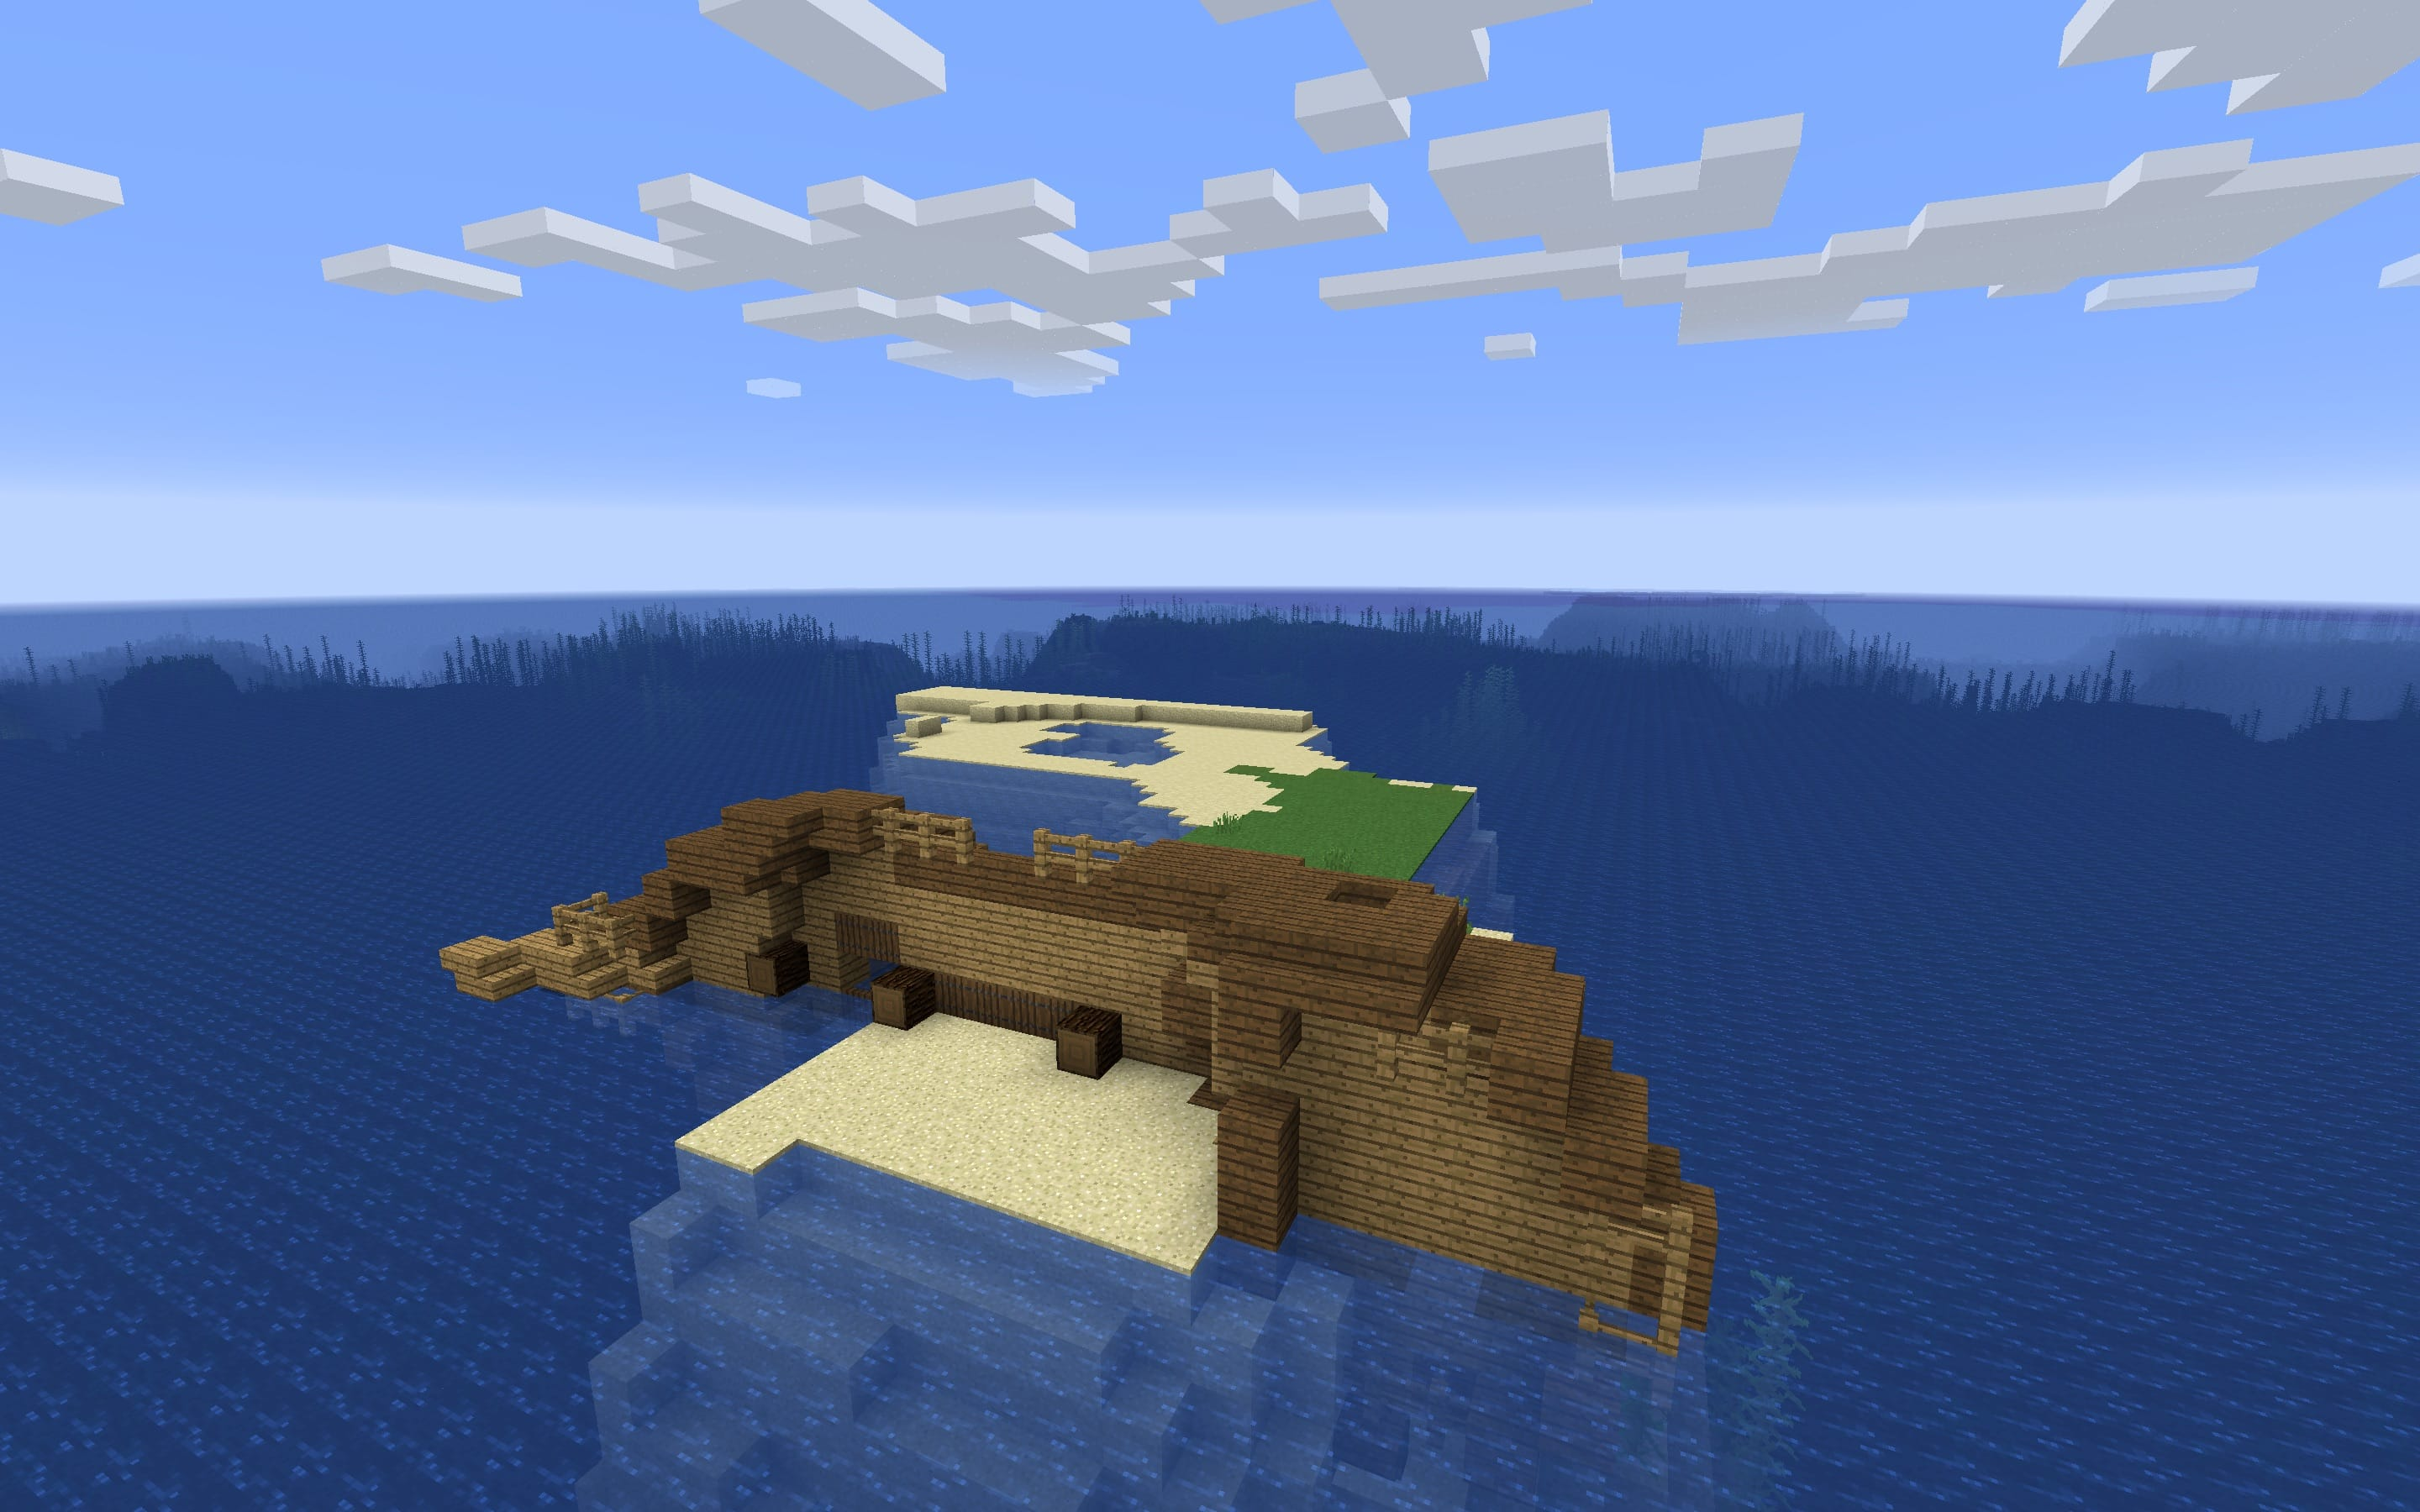 Marooned – Shipwreck on Survival Island